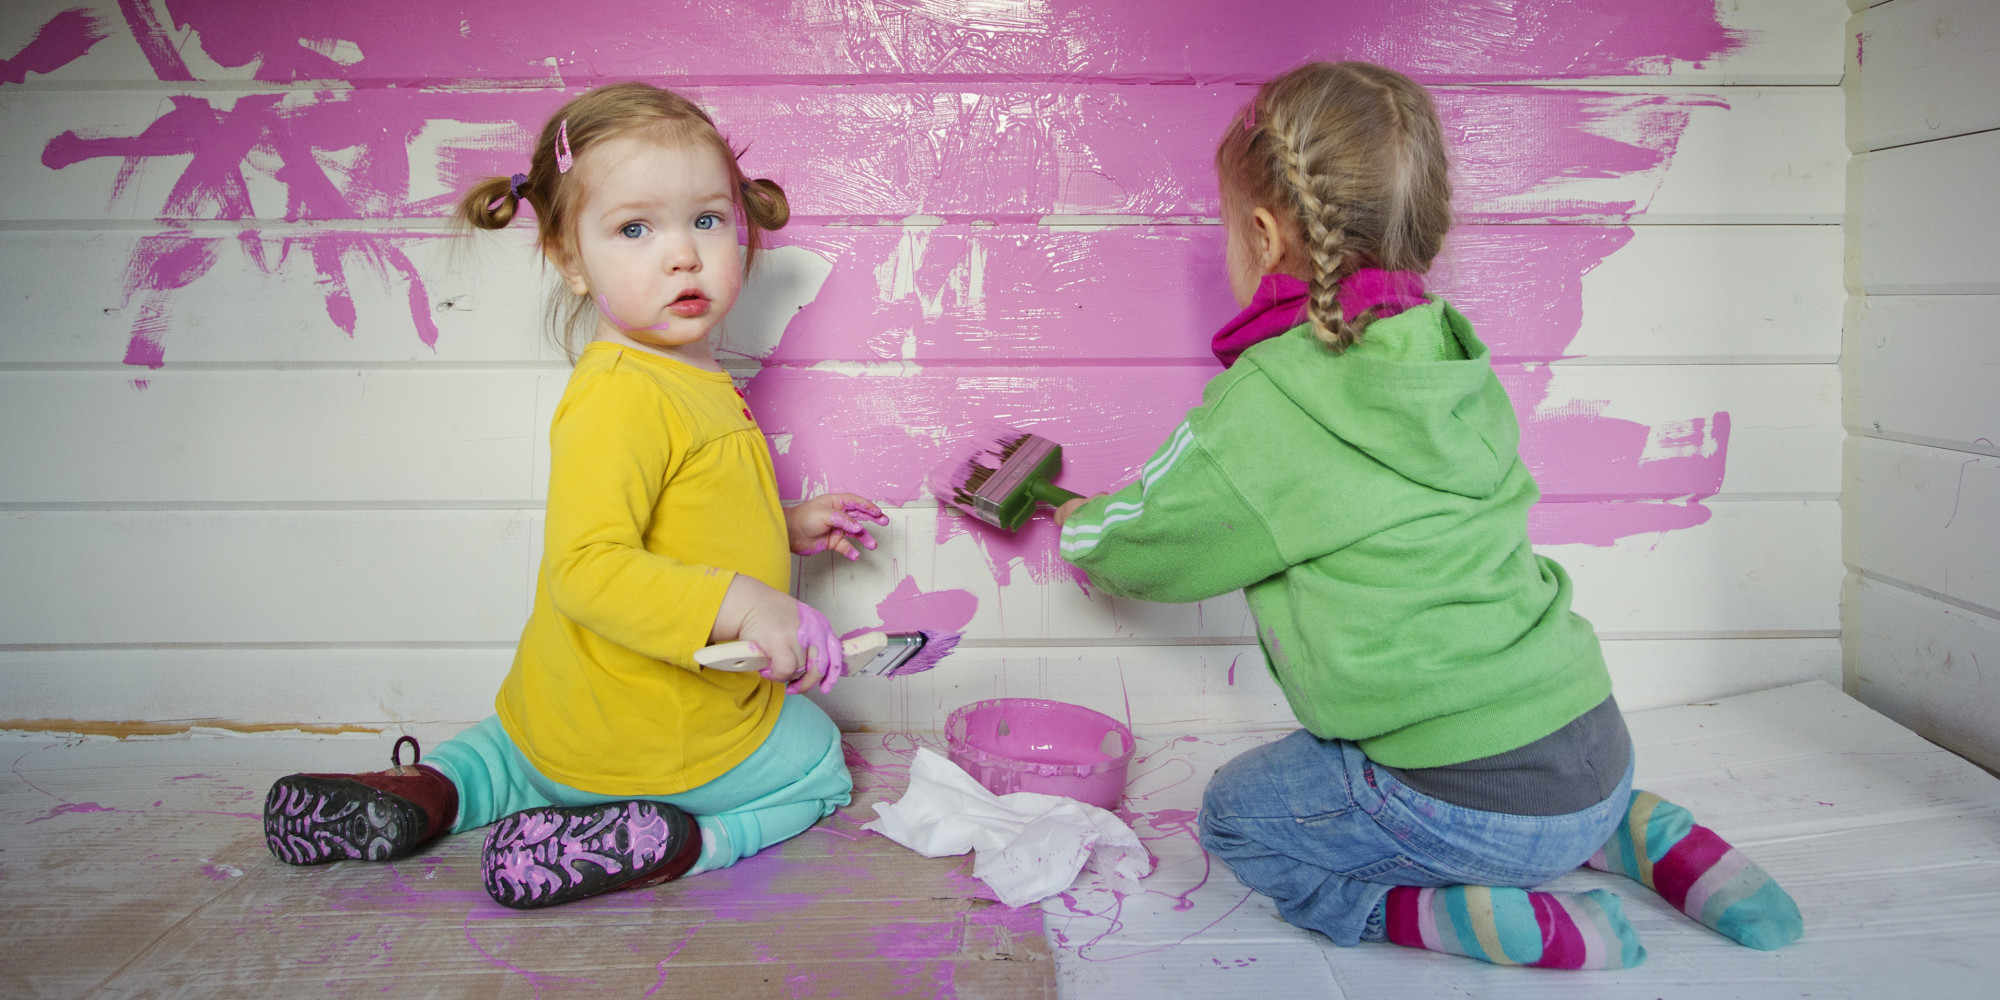 Sisters, 1 years (facing the camera) and 3 years, painting a white wall pink.